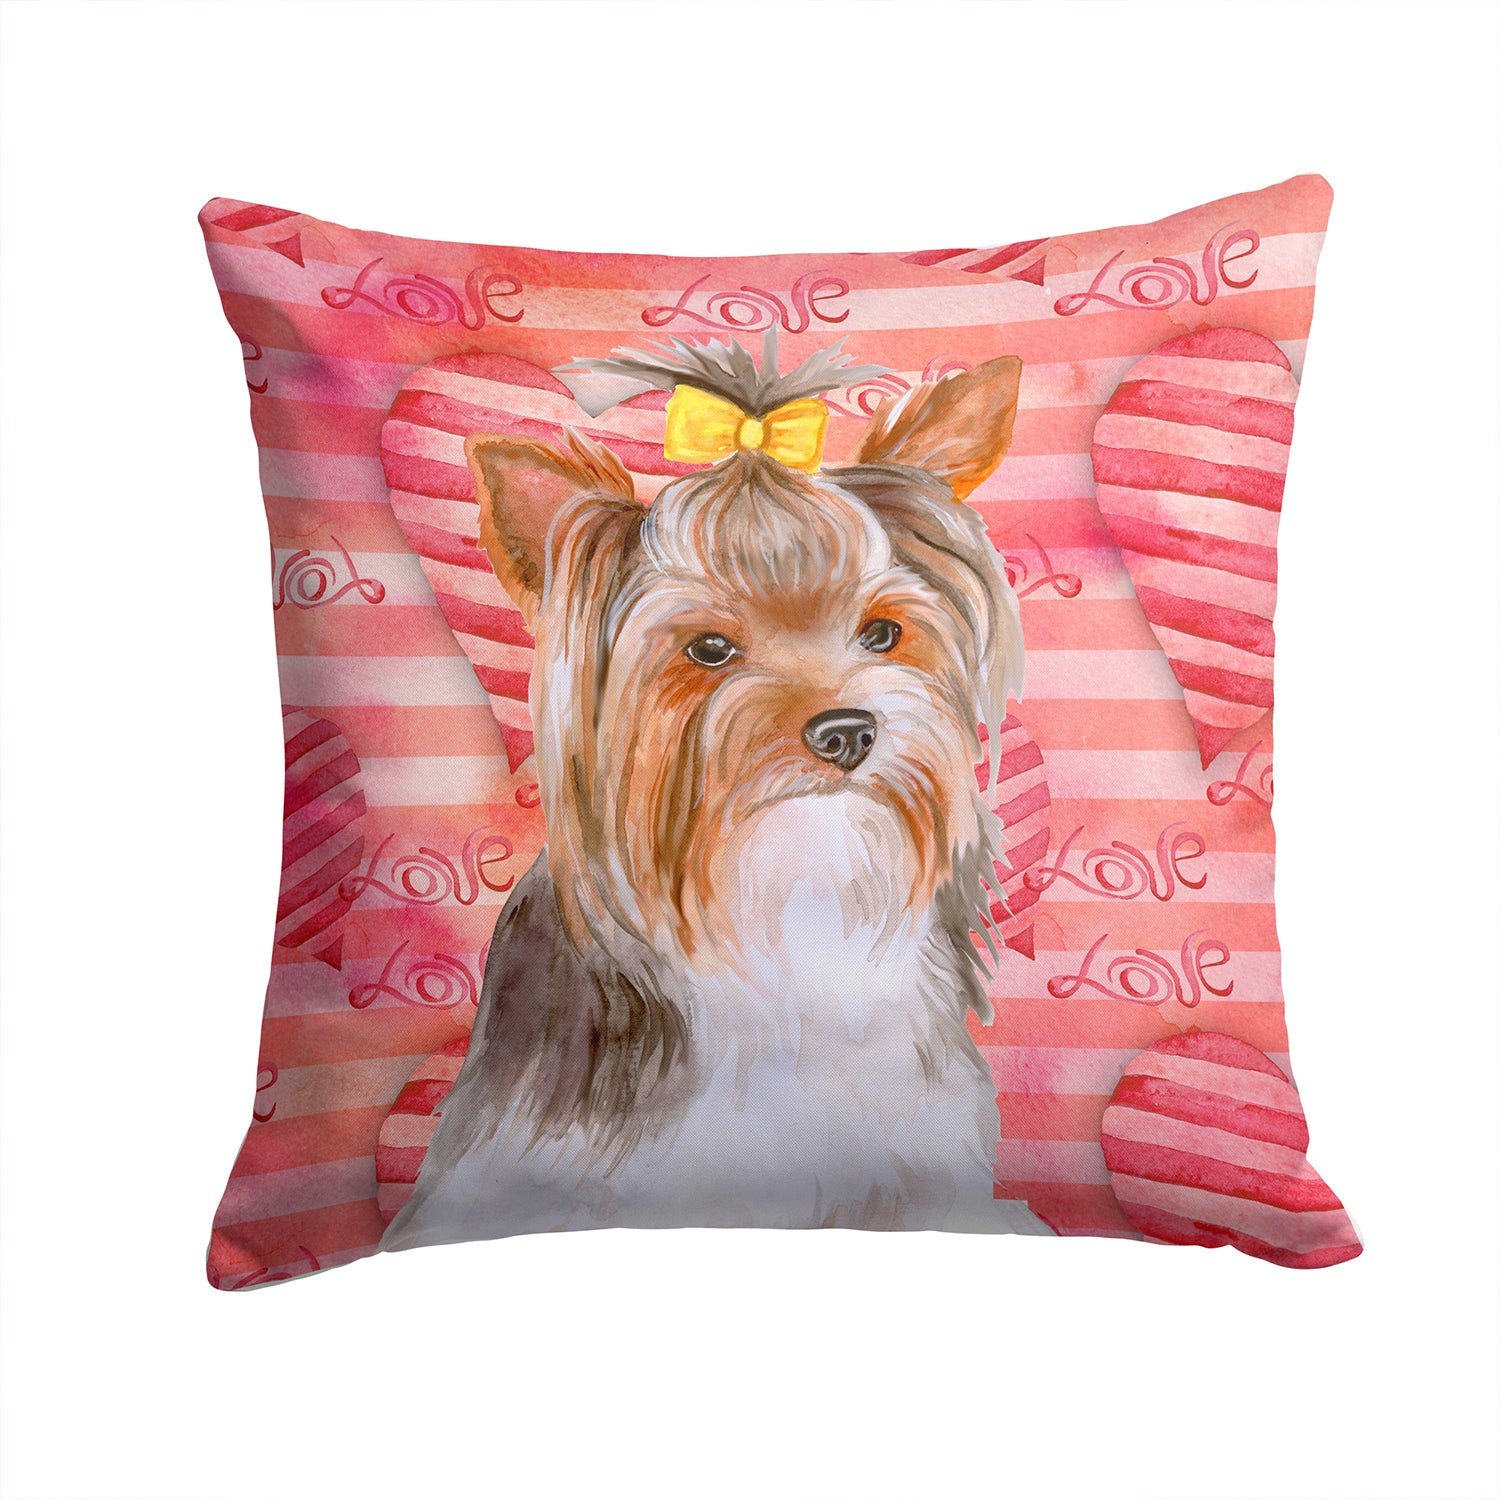 Yorkshire Terrier #2 Love Fabric Decorative Pillow BB9810PW1414 by Caroline's Treasures